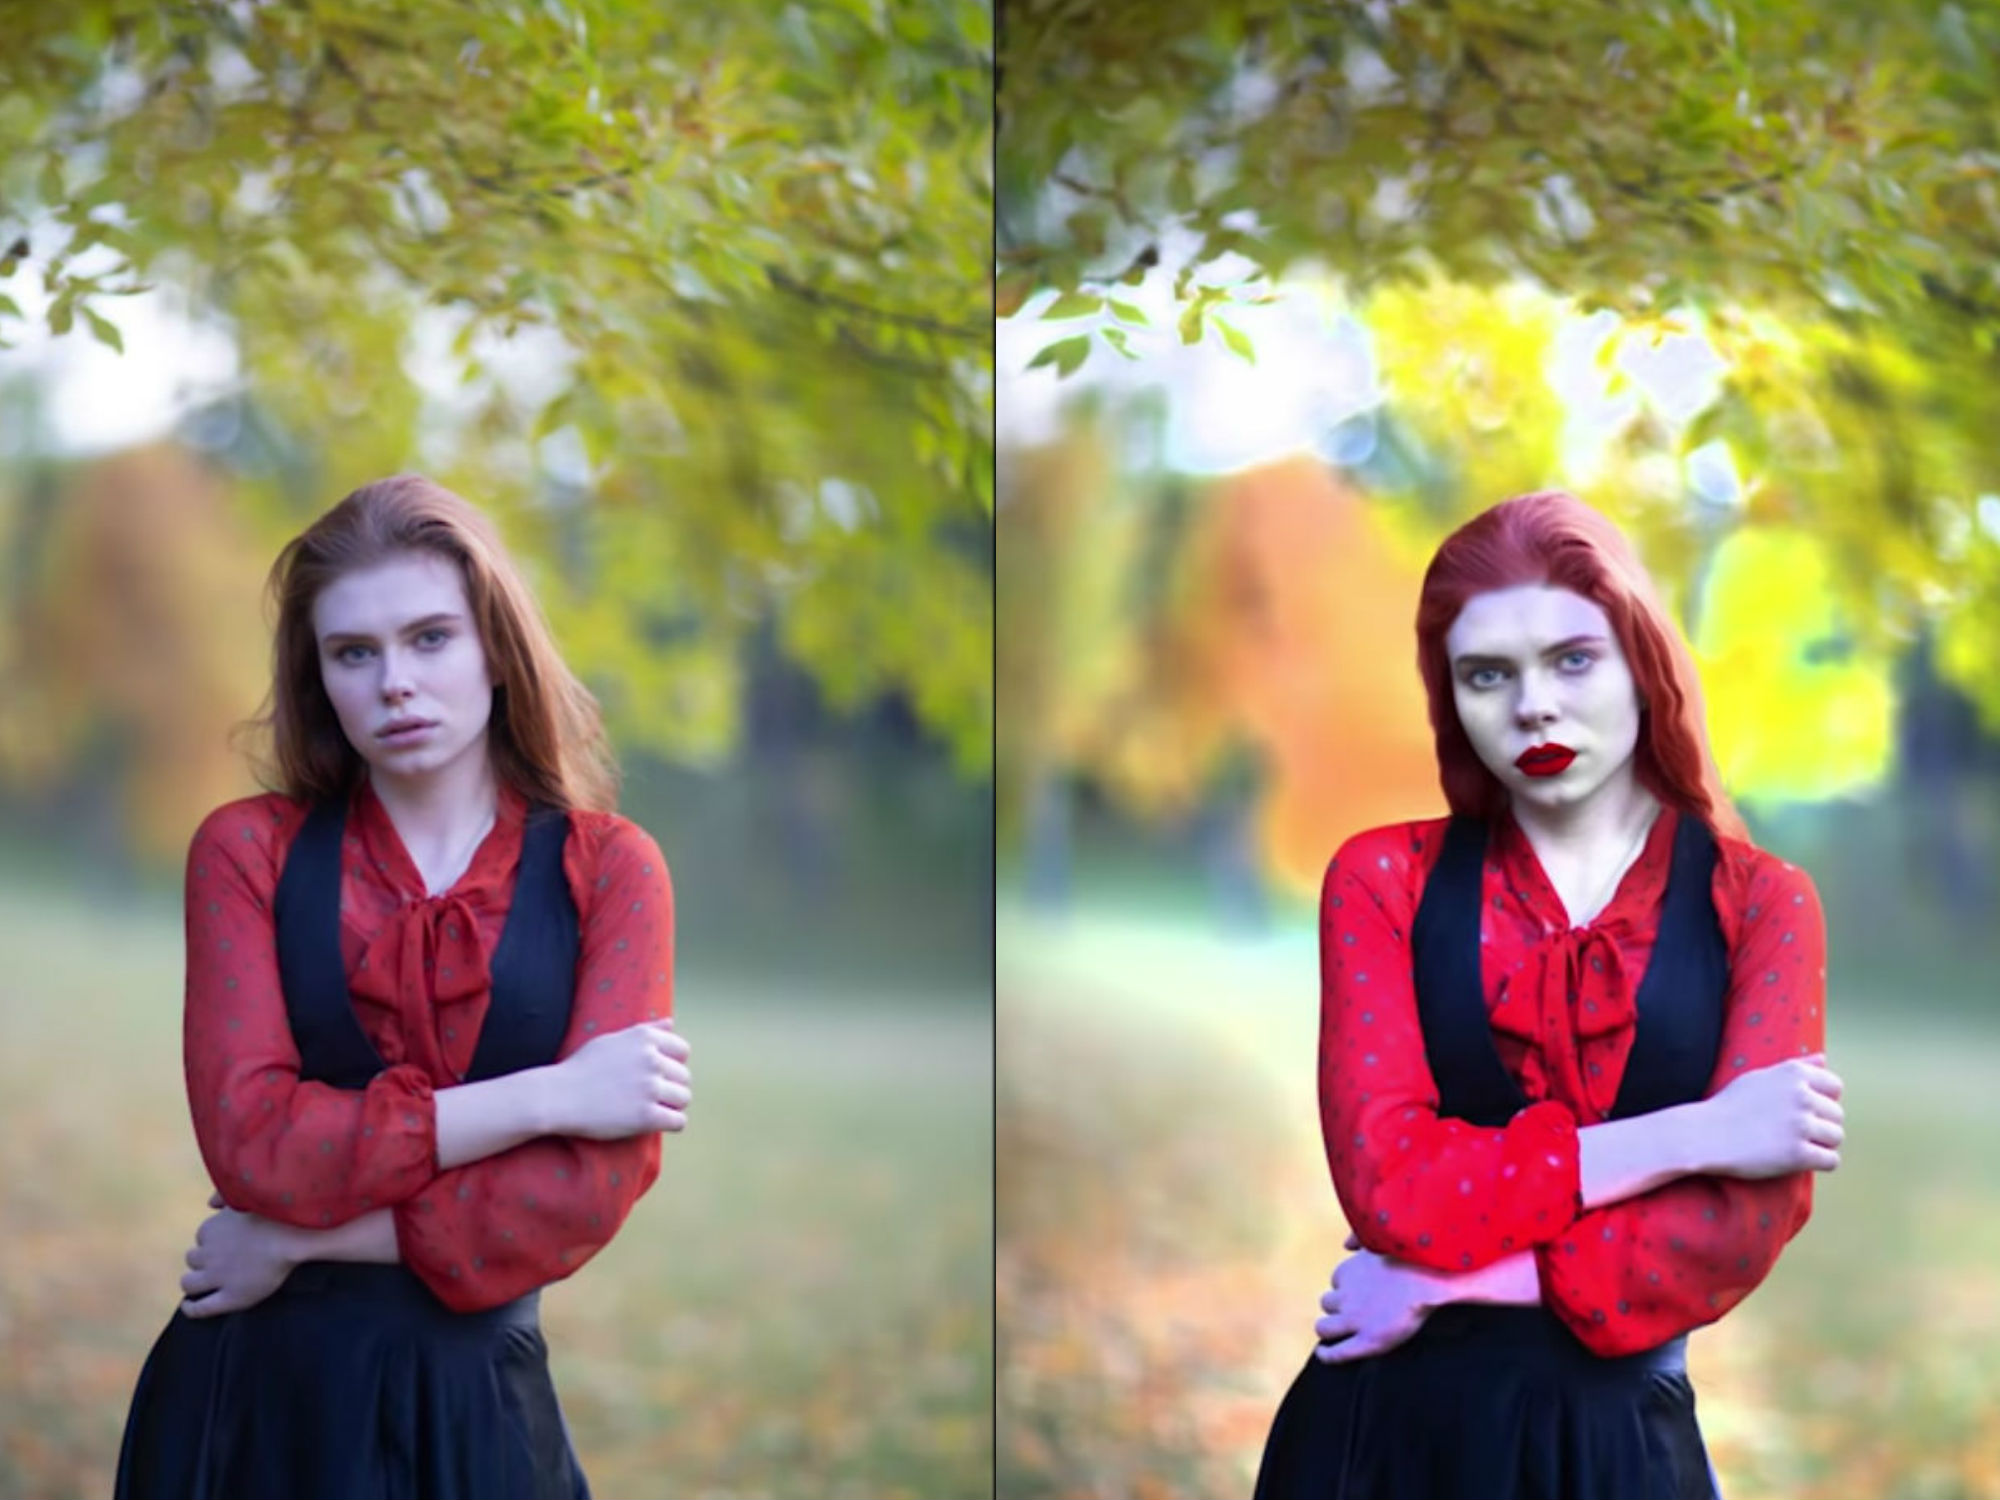 This is What Happens When You Hire a Cheap Photo Retoucher